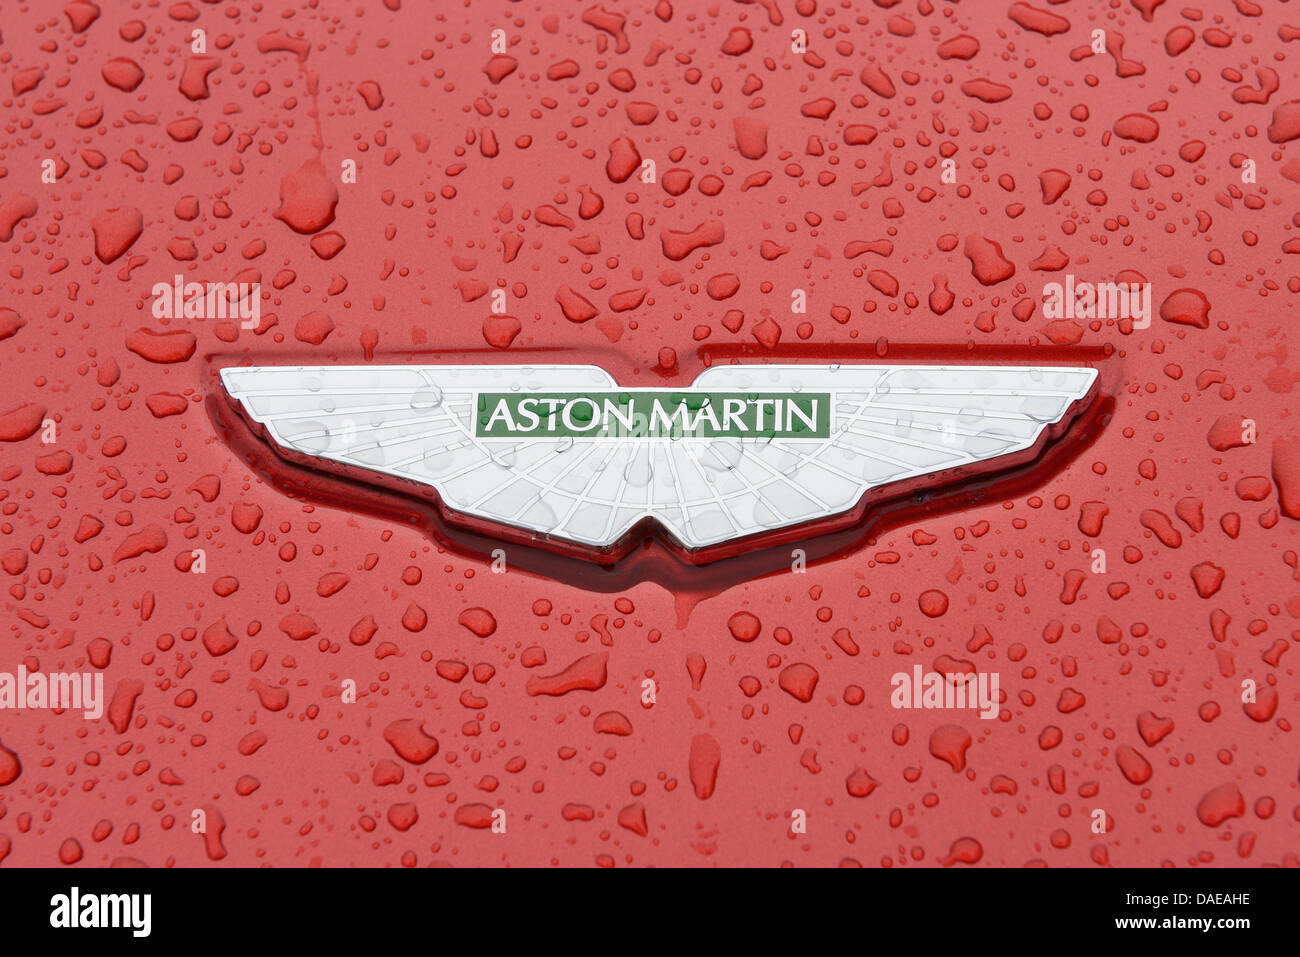 Aston Martin car badge close up on a wet bonnet - Stock Image